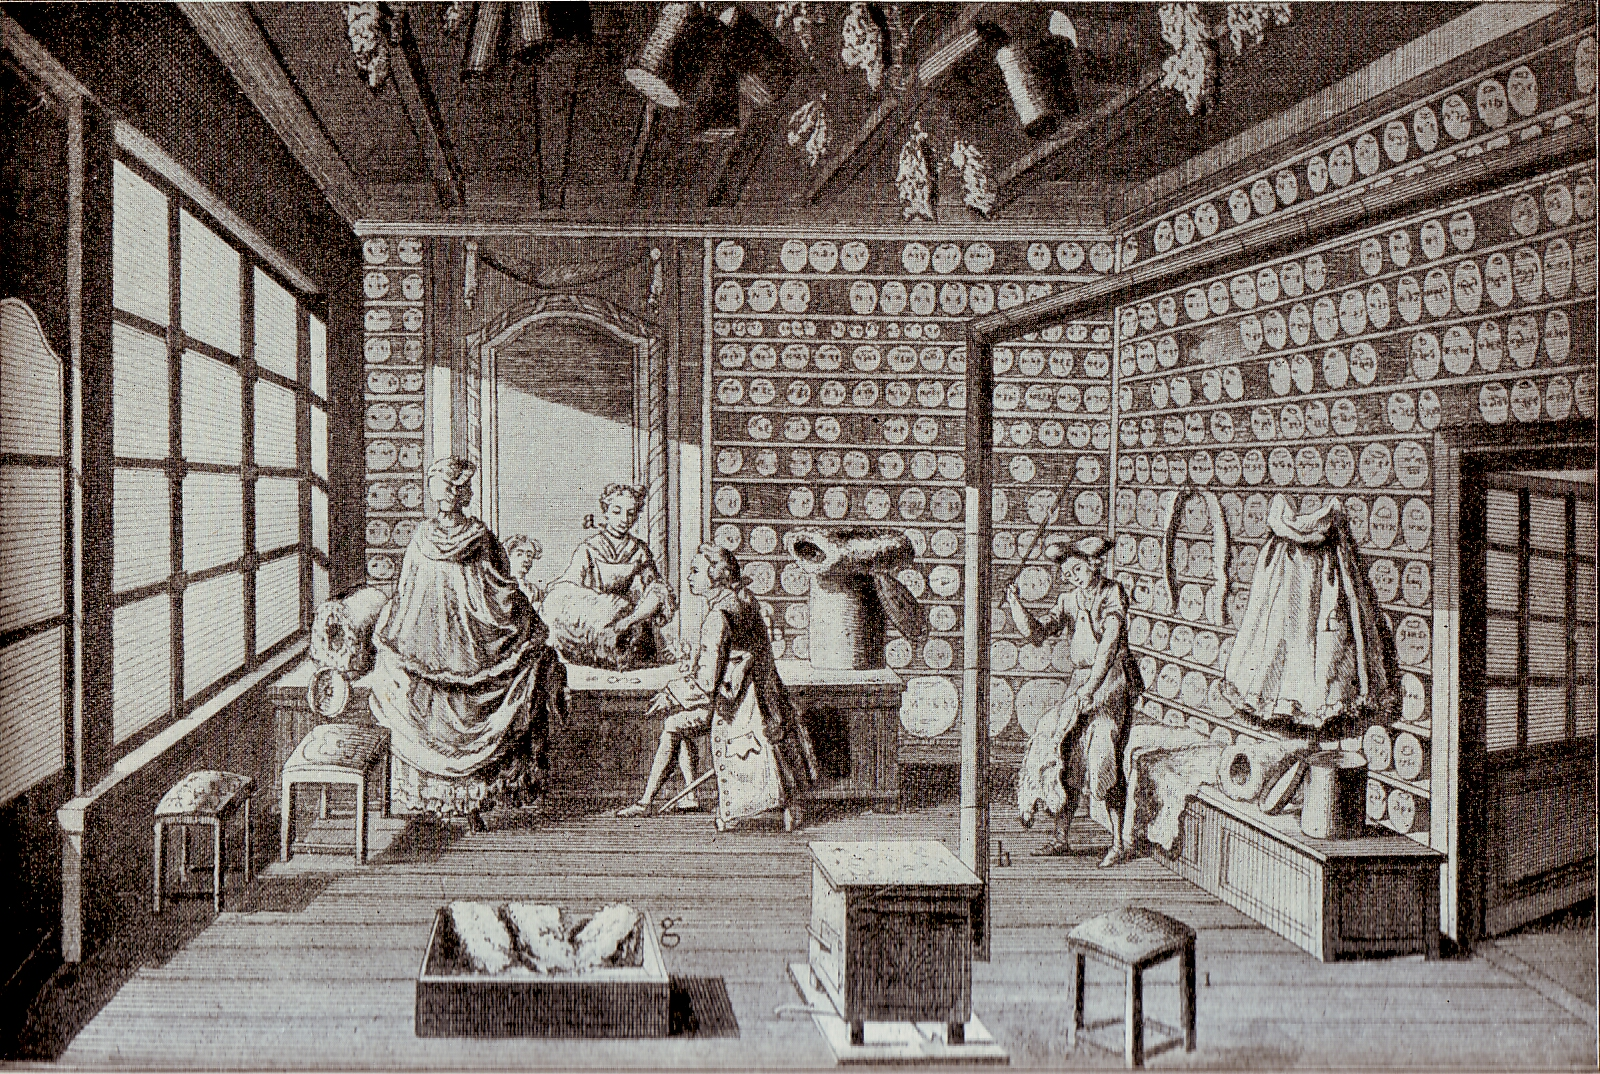 File:Furrier's shop in Paris (1765).jpg